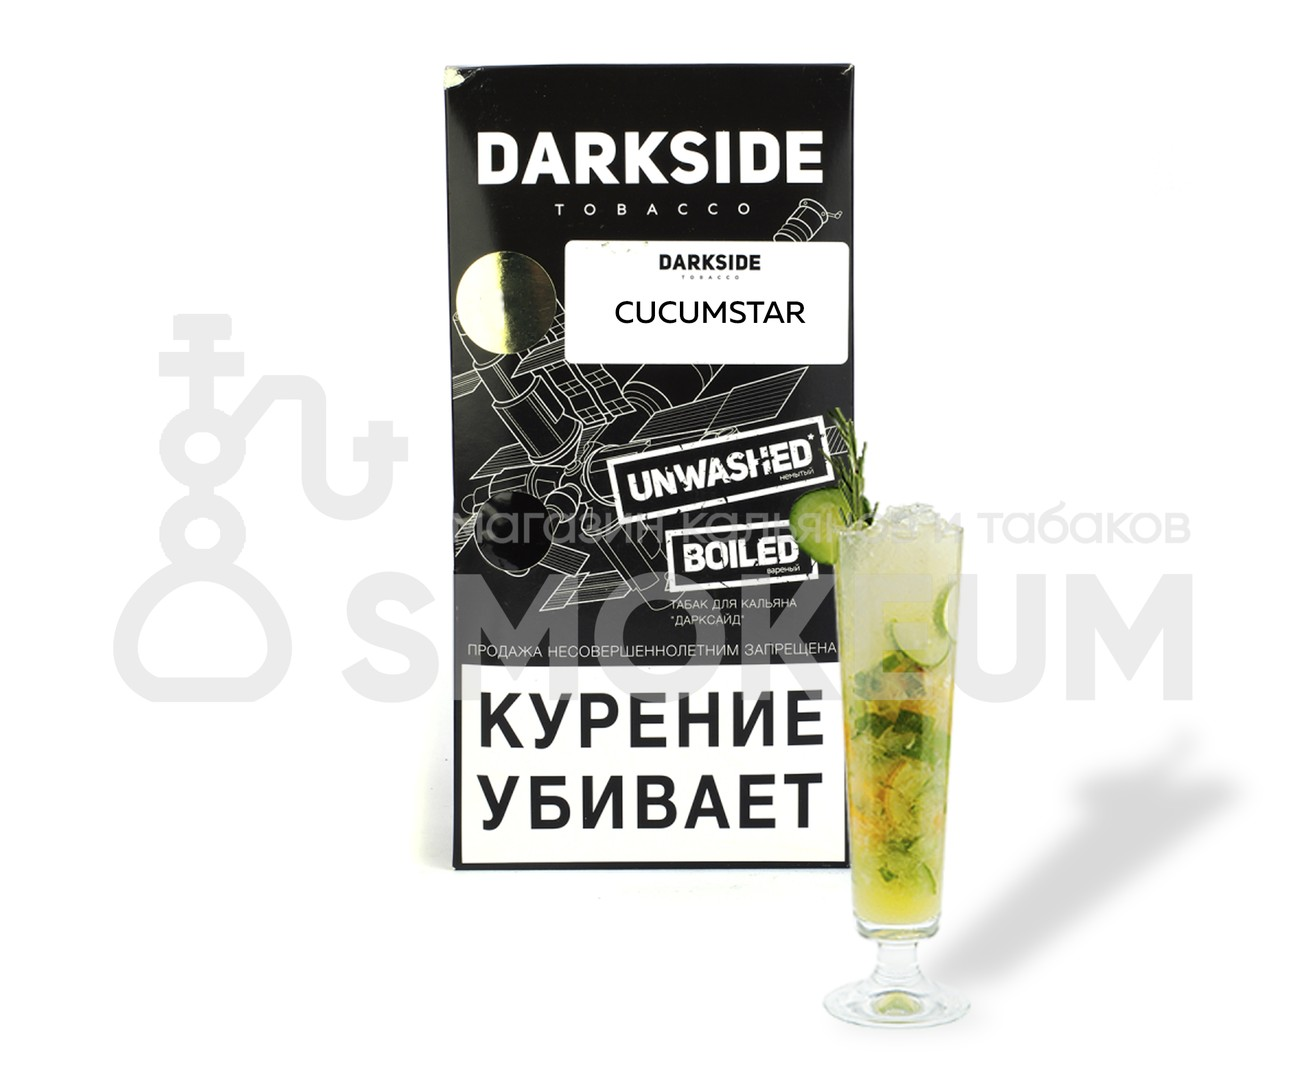 Табак Darkside (Medium) - Cucumstar (Огурец) 250 гр